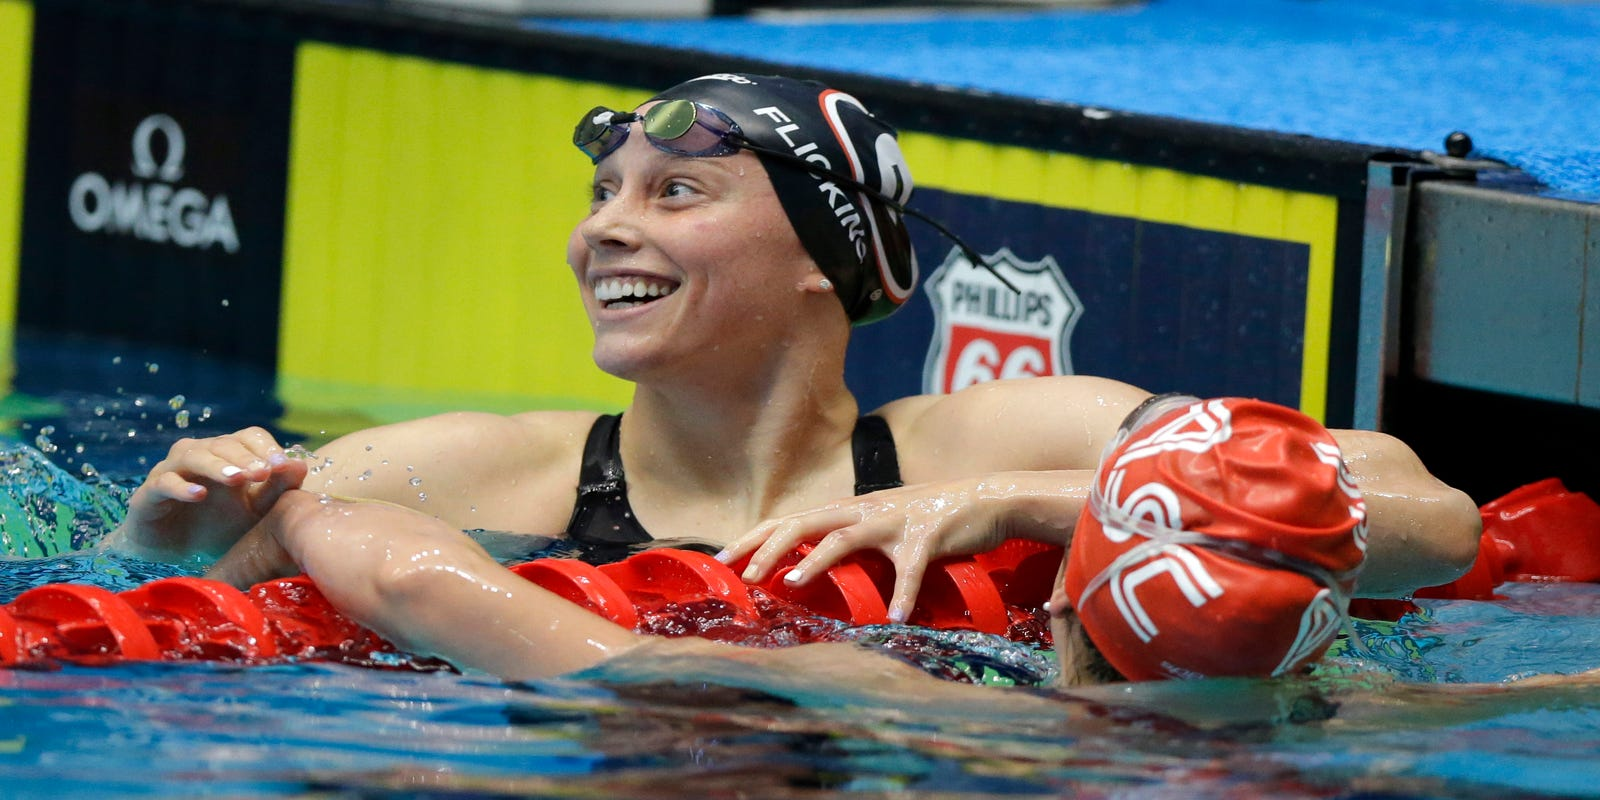 Spring Grove's Hali Flickinger ranked No. 1 in world in 200 butterfly after win in Indy